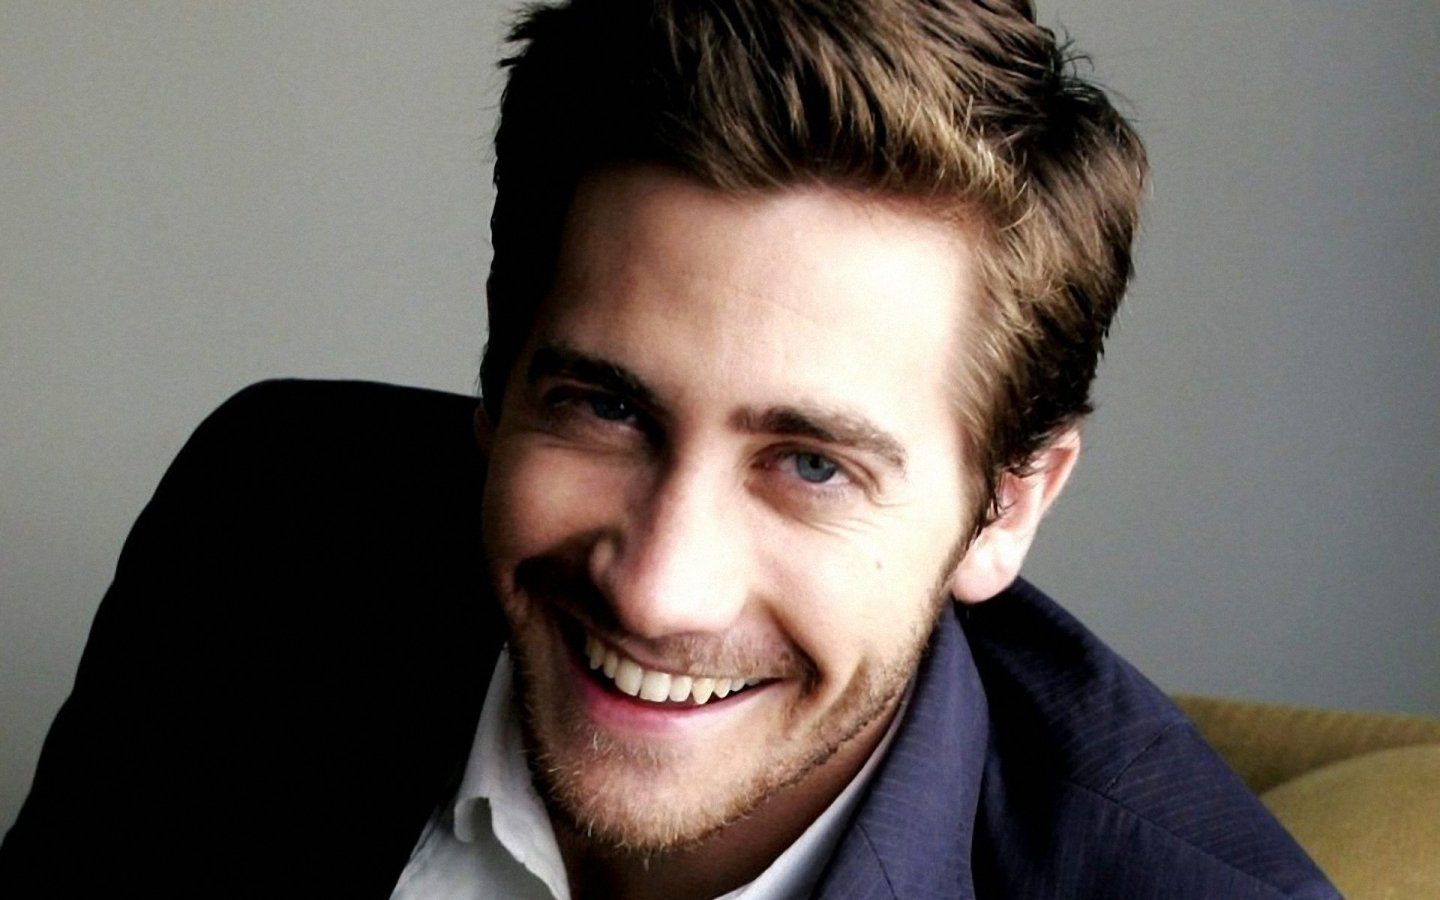 jake-gyllenhaal-smile_107855-1440x900 brothersoft